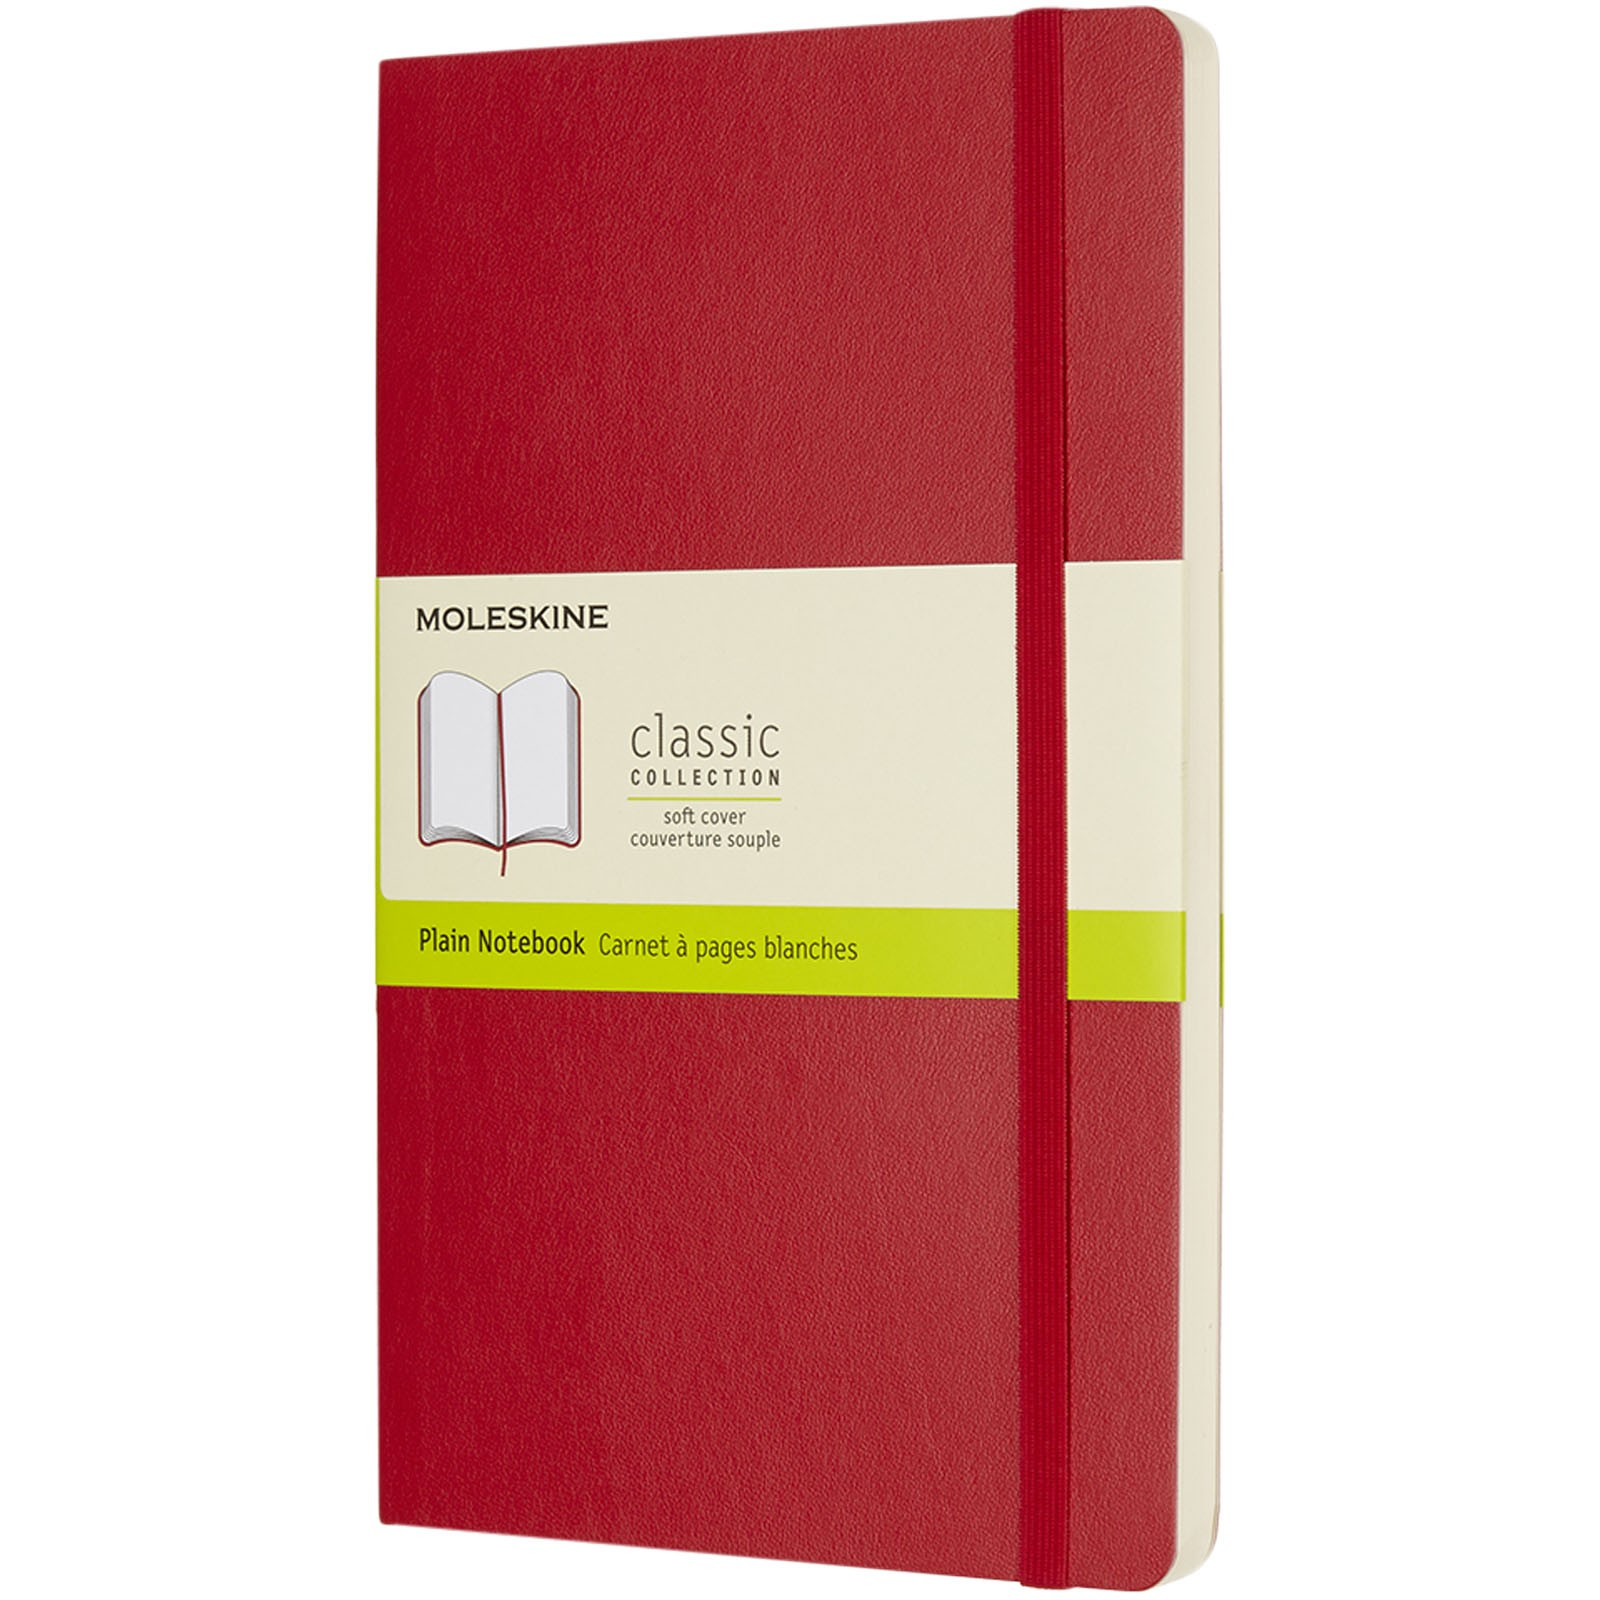 Classic L soft cover notebook - plain - Scarlet red